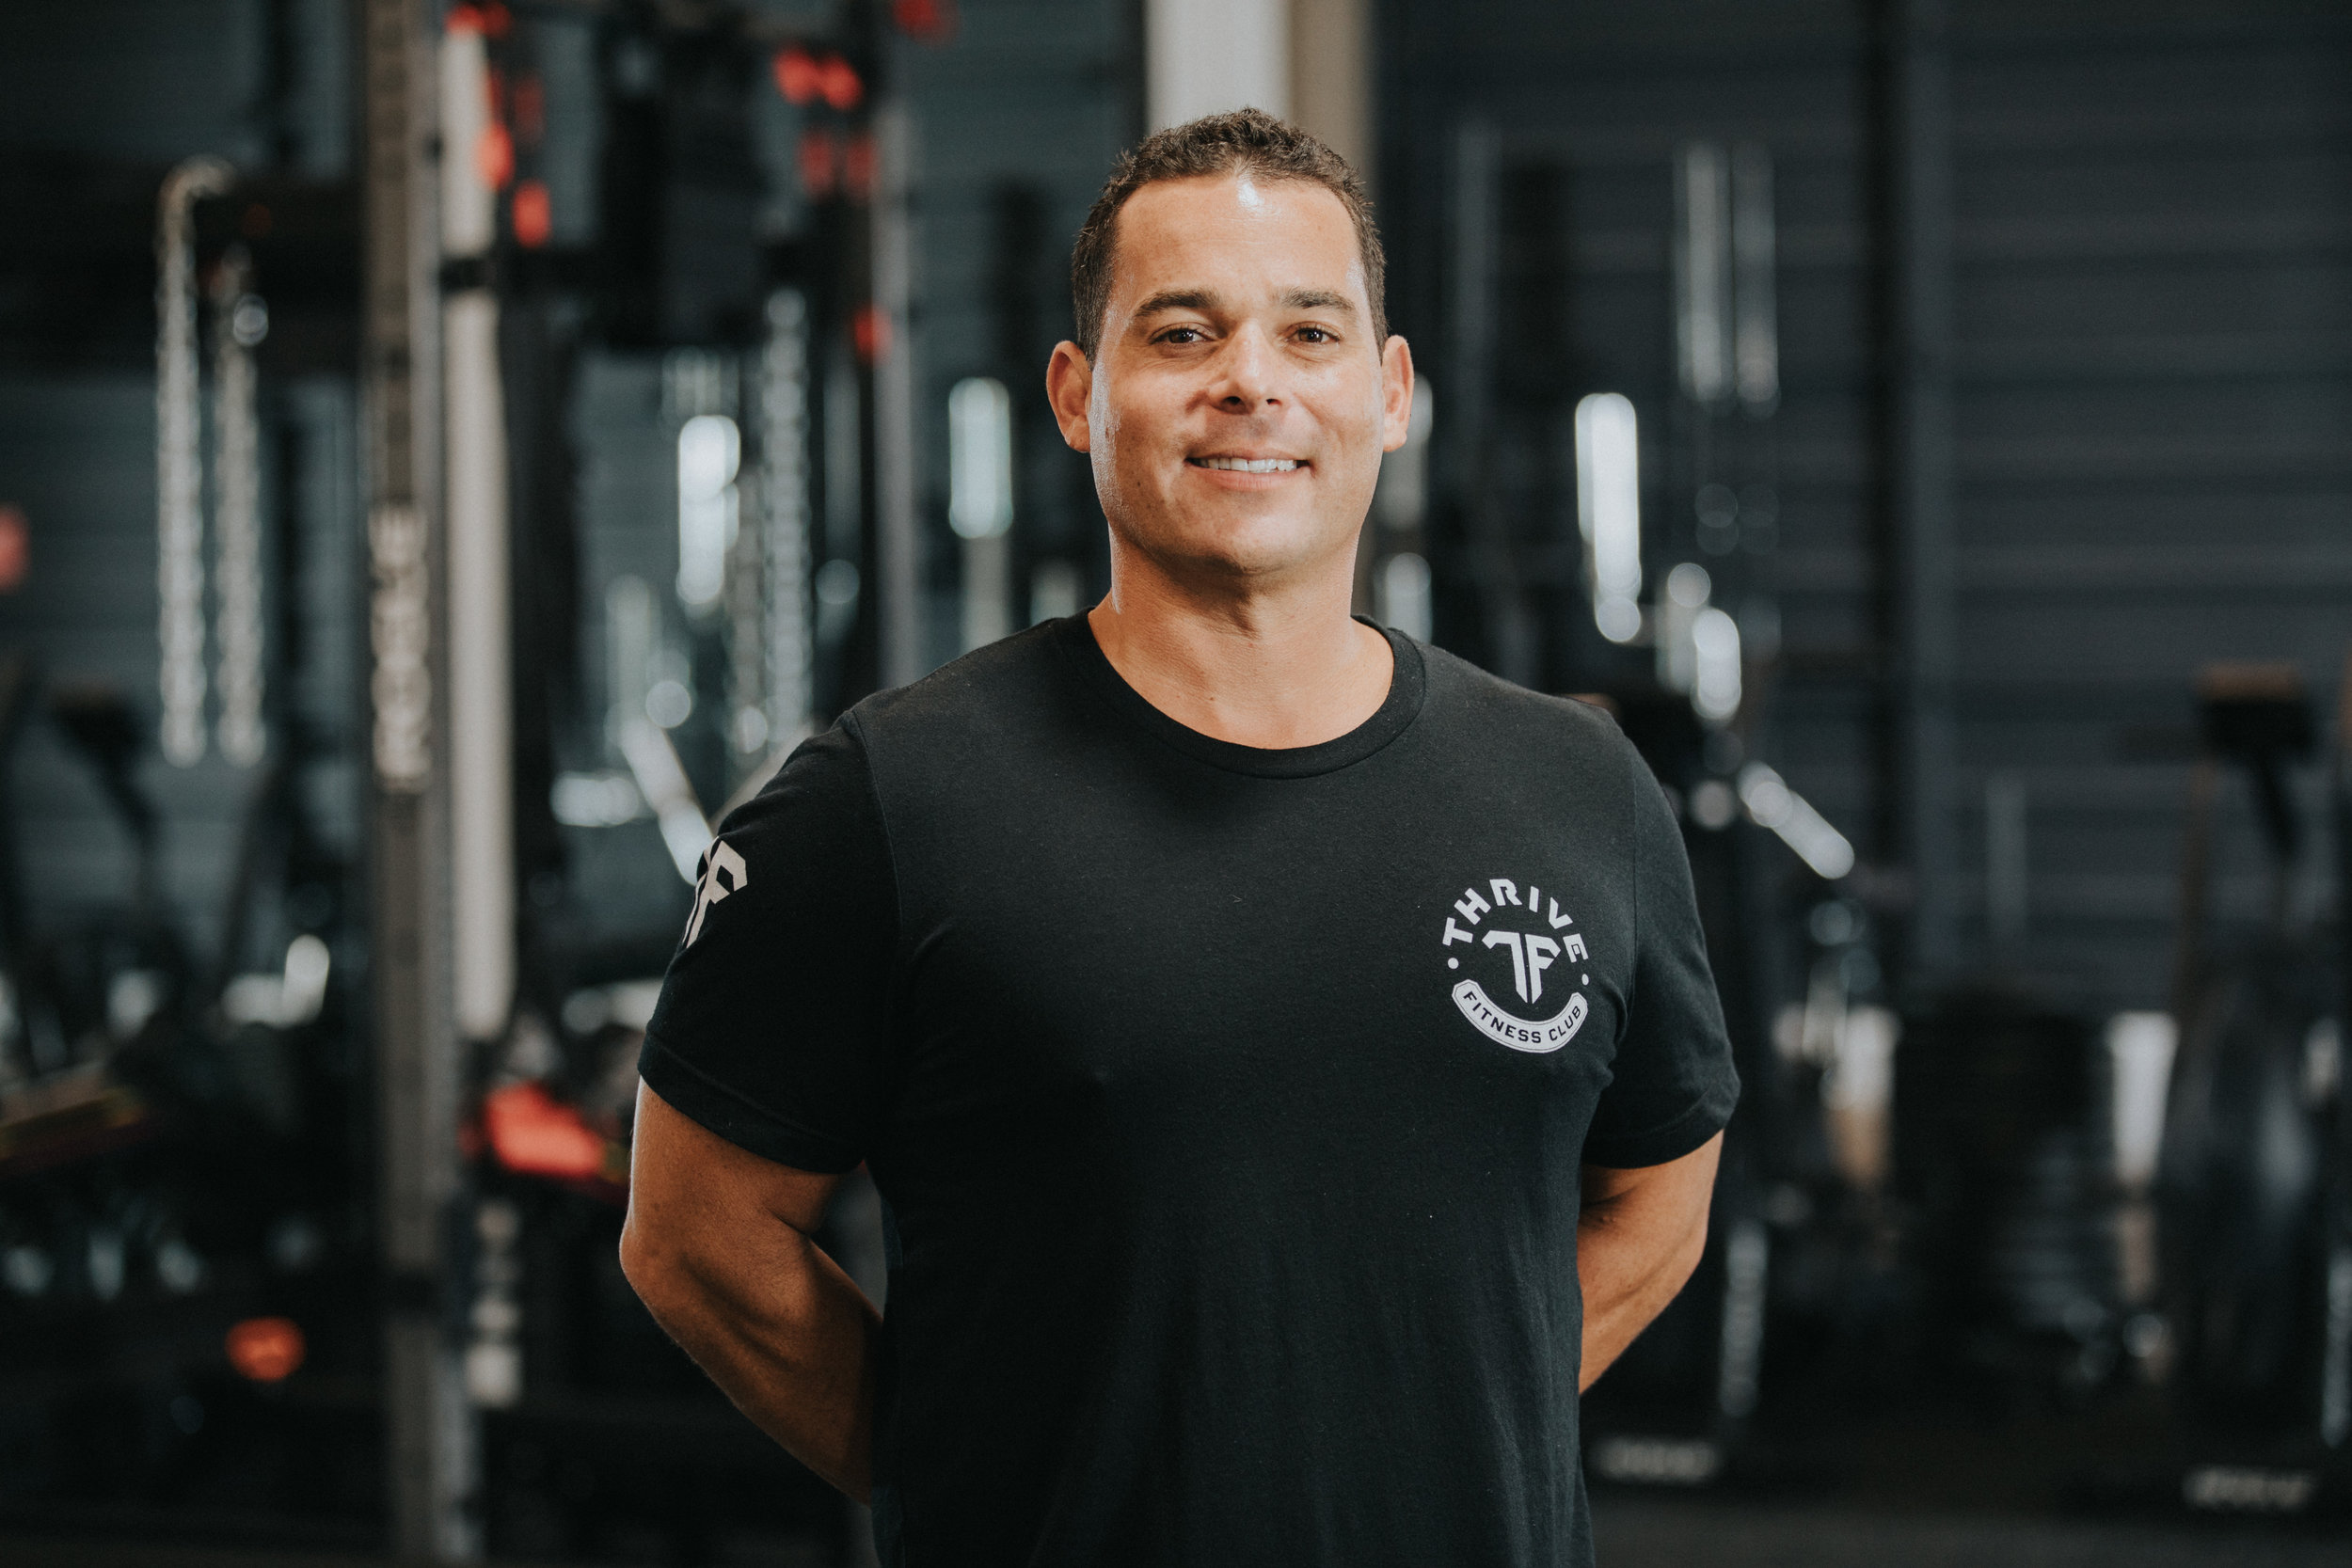 Ryan Thilgen - CEO, Owner, CSCS, Pn1Exercise Science Degree - Northern Illinois UniversityNSCA - Certified Strength and Conditioning SpecialistPrecision Nutrition Level 1 Certified ProfessionalACE Certified Personal Trainer